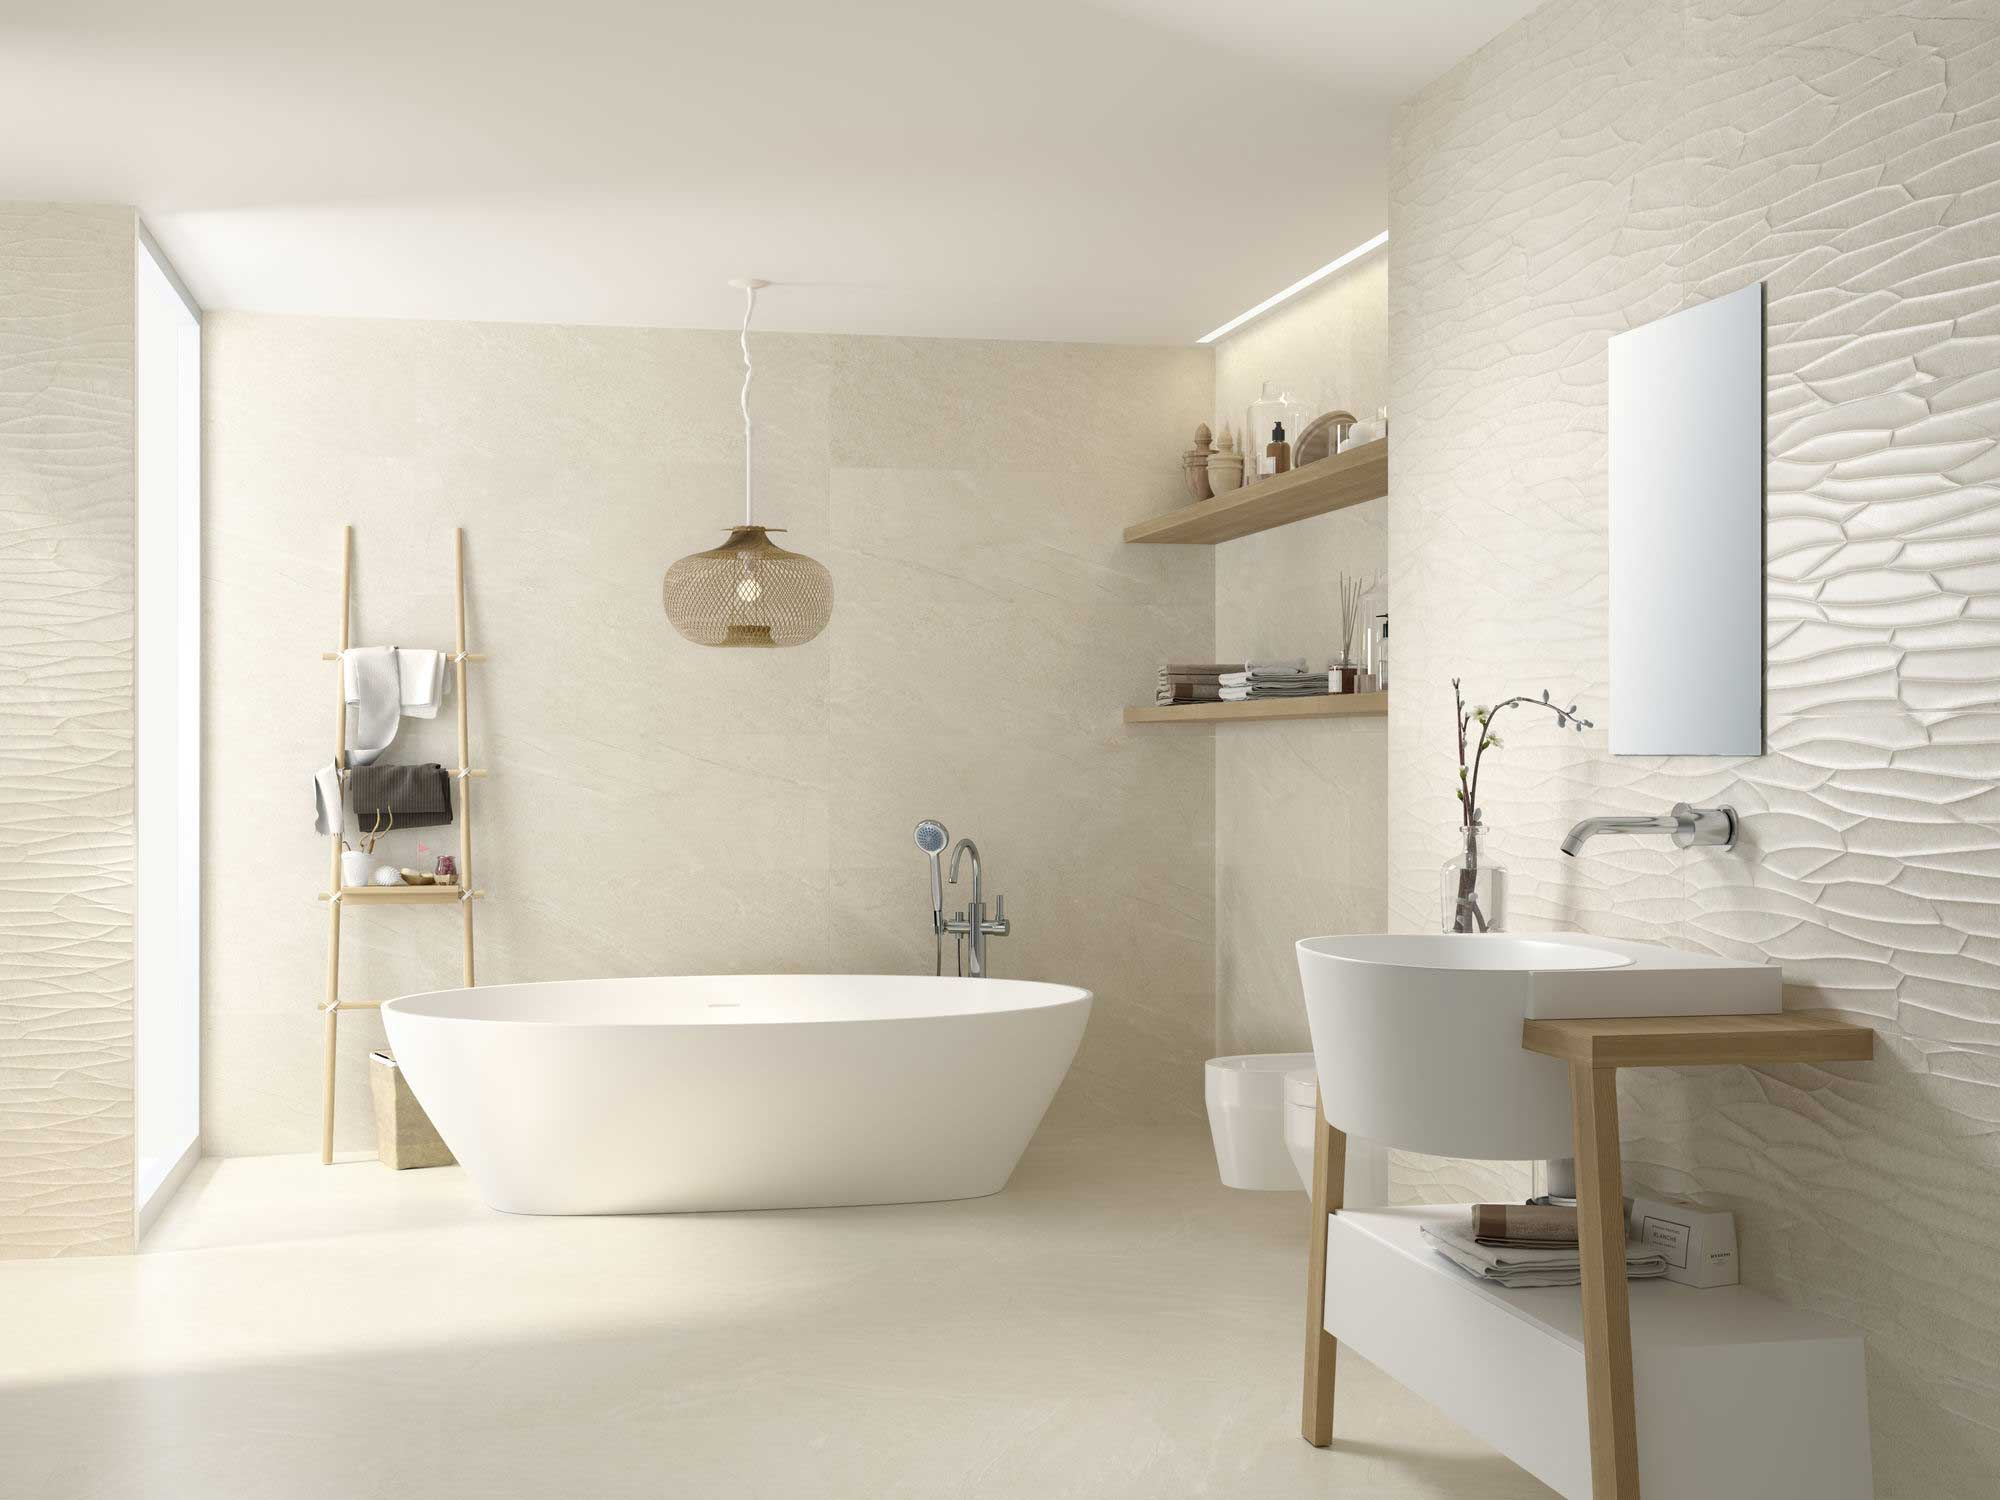 Bream Bathroom with Large Bath and White Sink